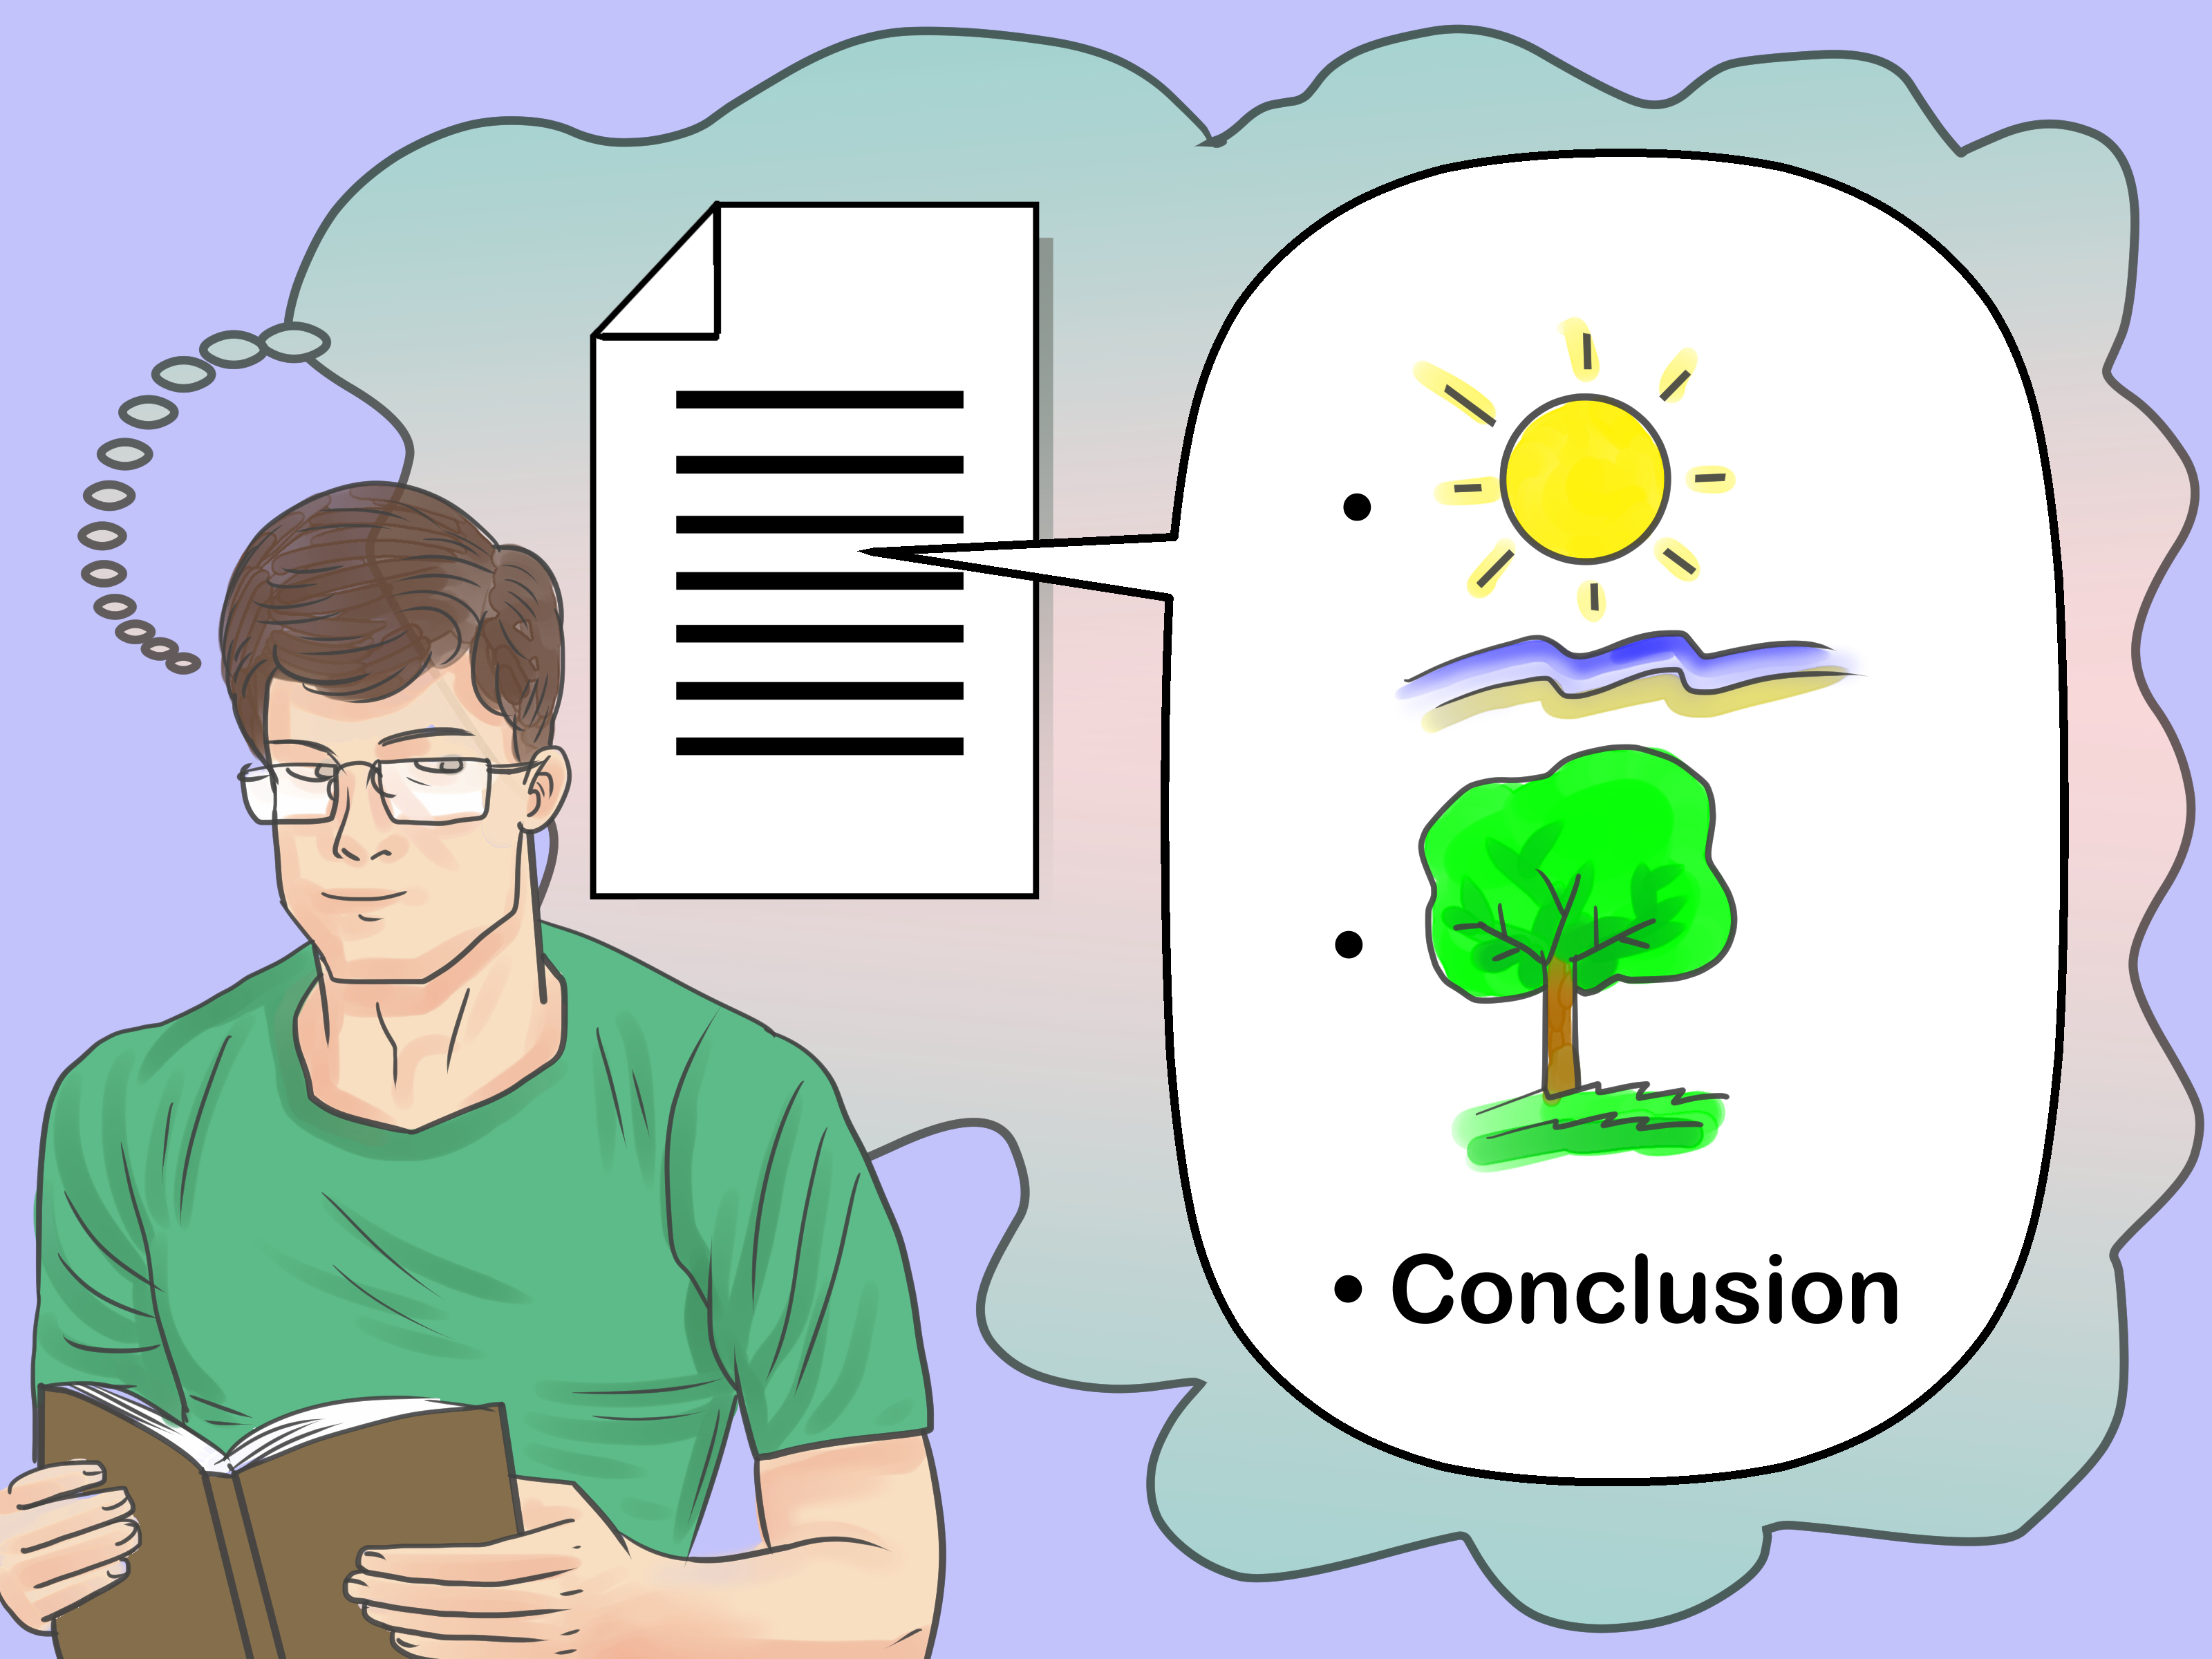 011 Comparing And Contrasting Essay Example Write Compare Contrast Step Version Unique Comparison Sample Pdf Structure University Topics On Health Full